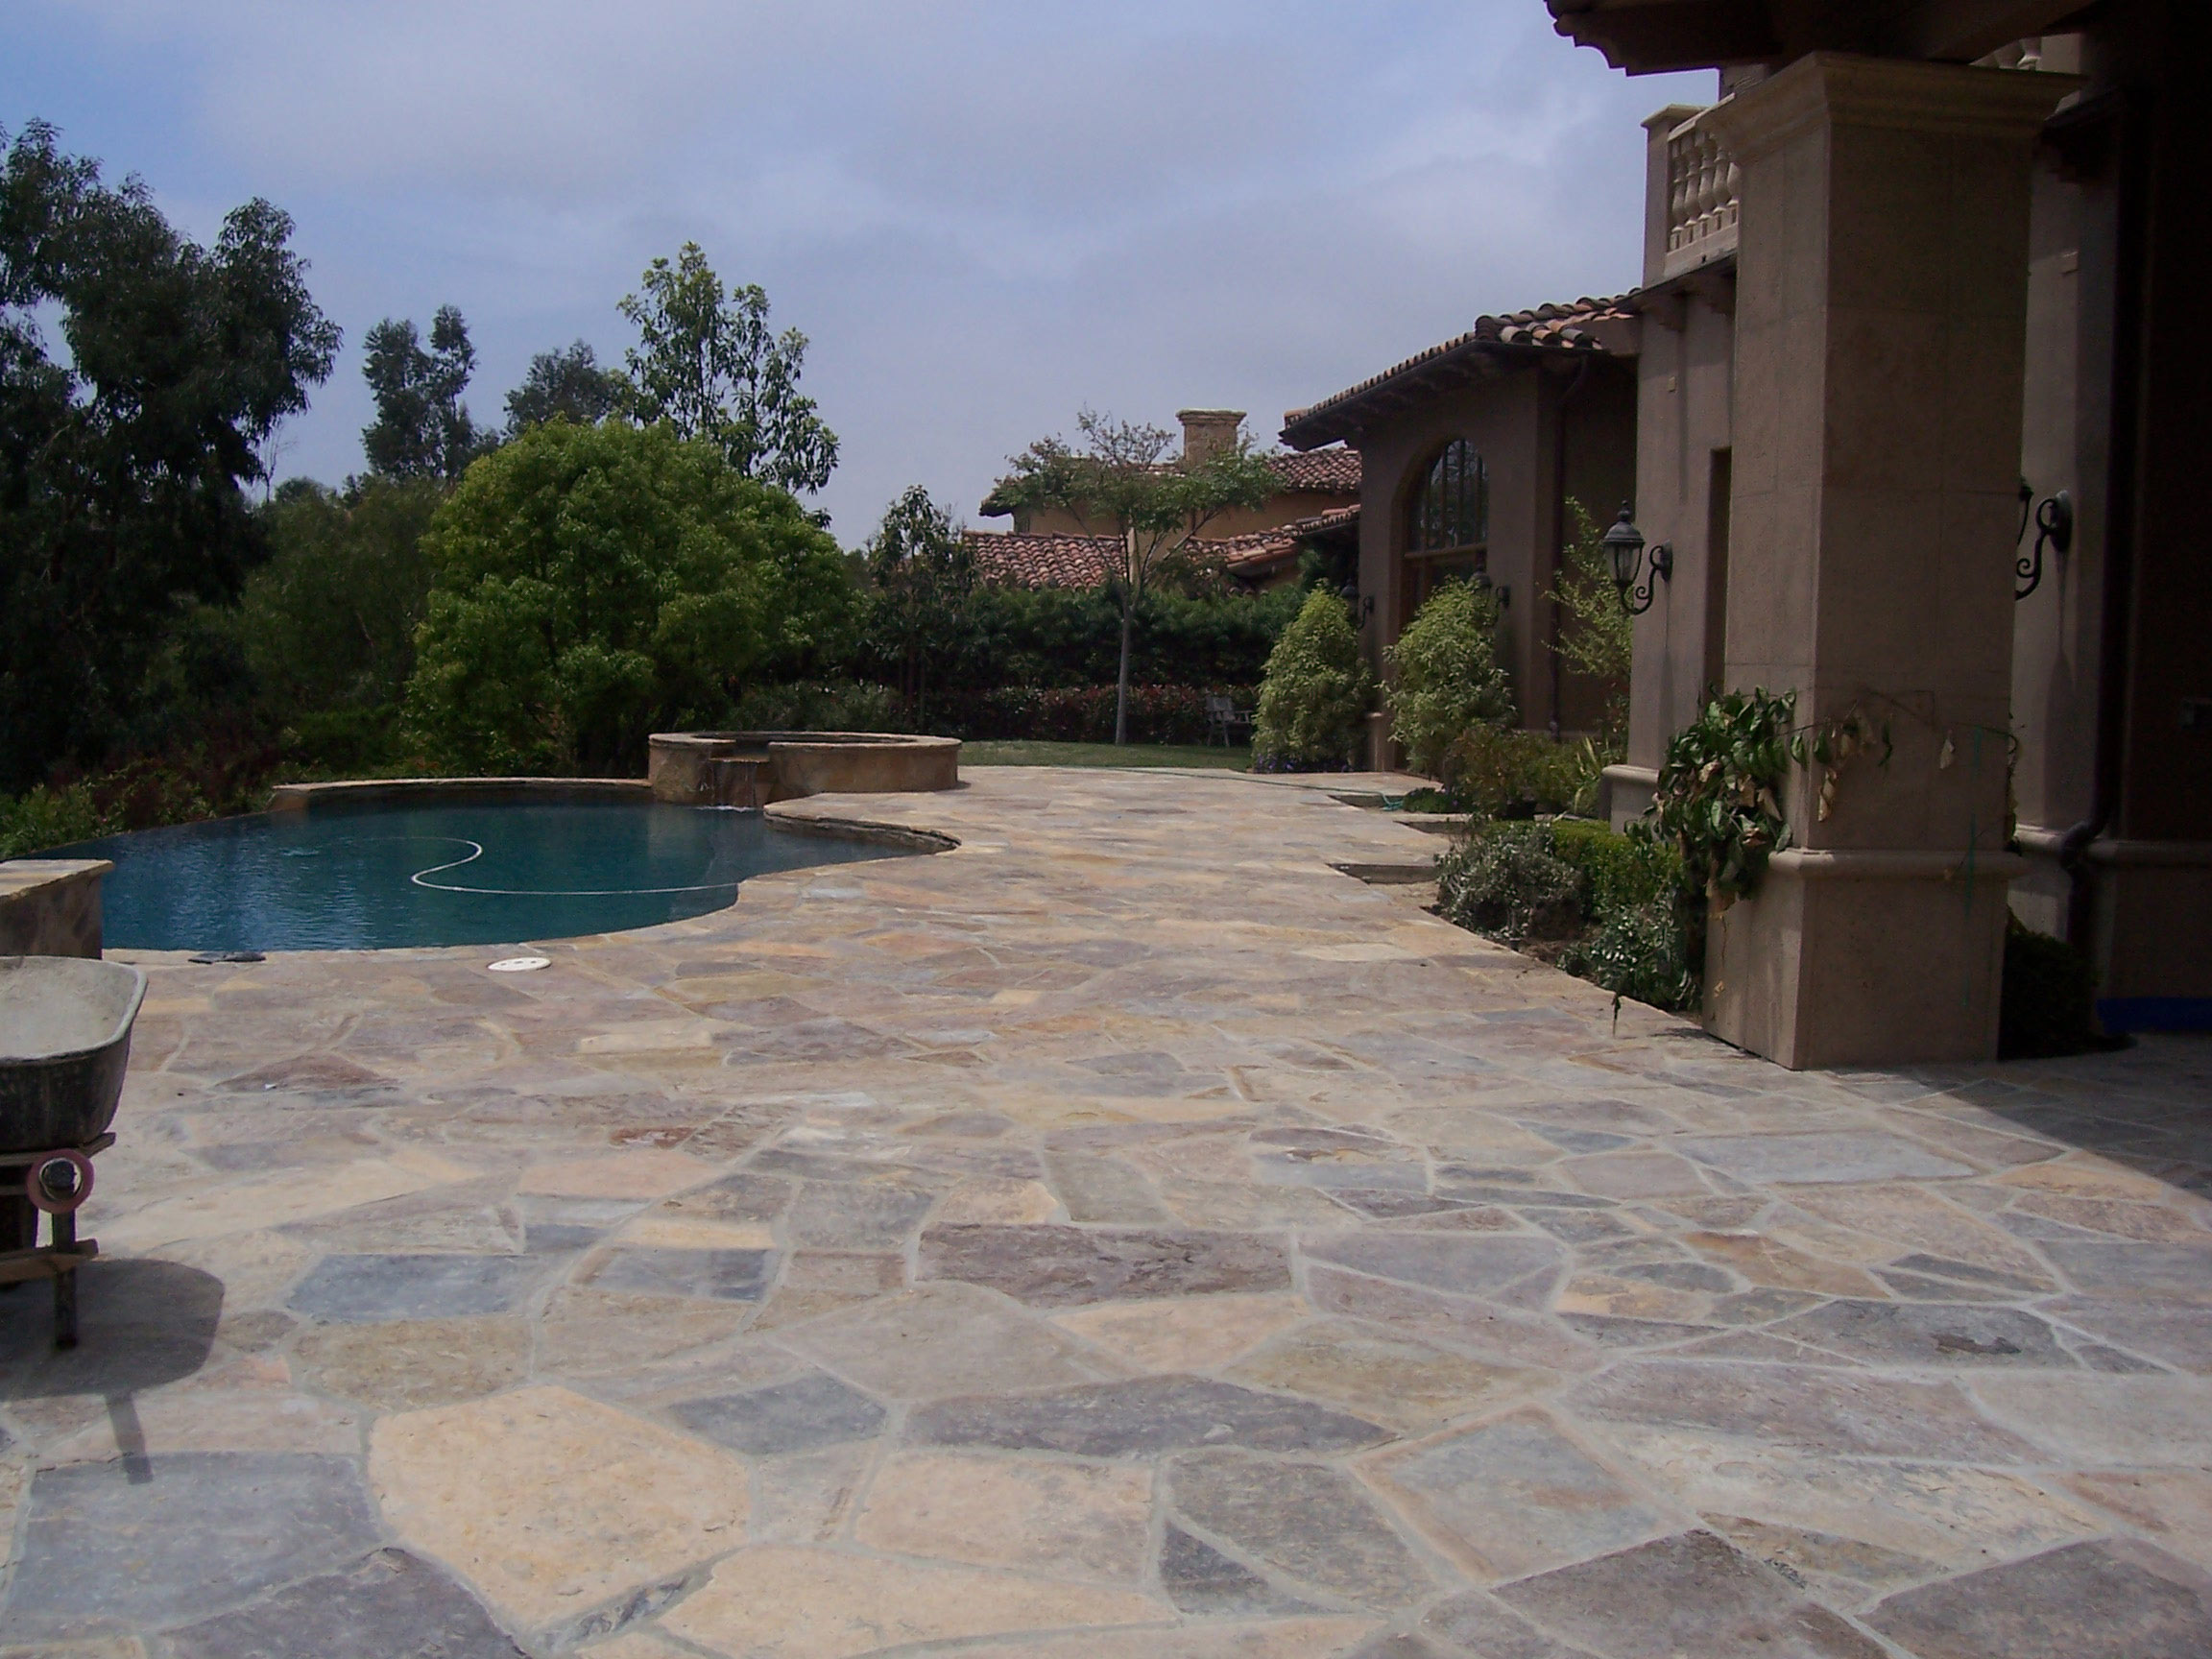 Concrete Contractors - MF Concrete Contractors LLC